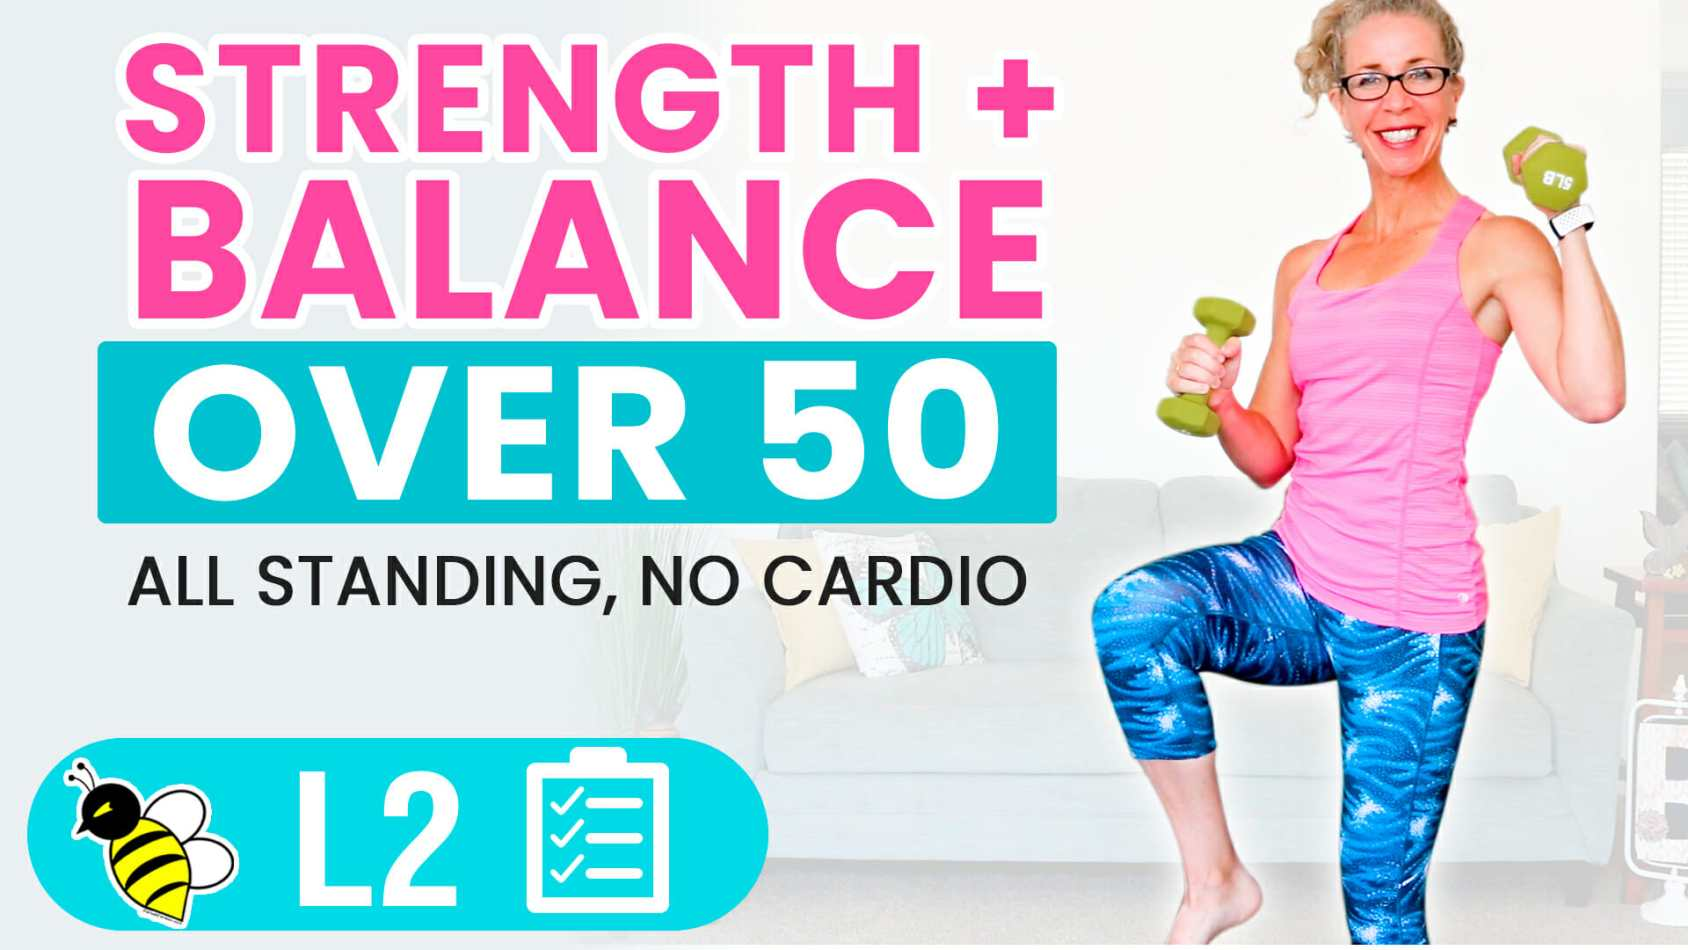 25 Minute Barefoot BALANCE + STRENGTH Functional Fitness for Women Over 50